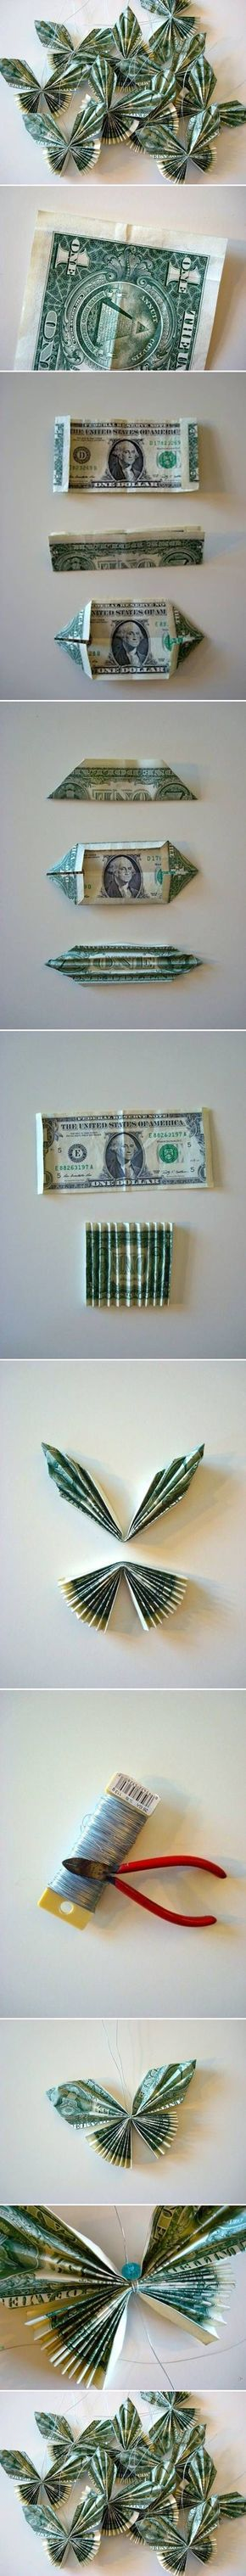 Pin by diana sasmita on gambar pinterest origami crafts and diy dollar bill butterfly origami folding technique for gifts or holidays christmas stockings easter baskets birthday or graduation or wedding gift jeuxipadfo Images